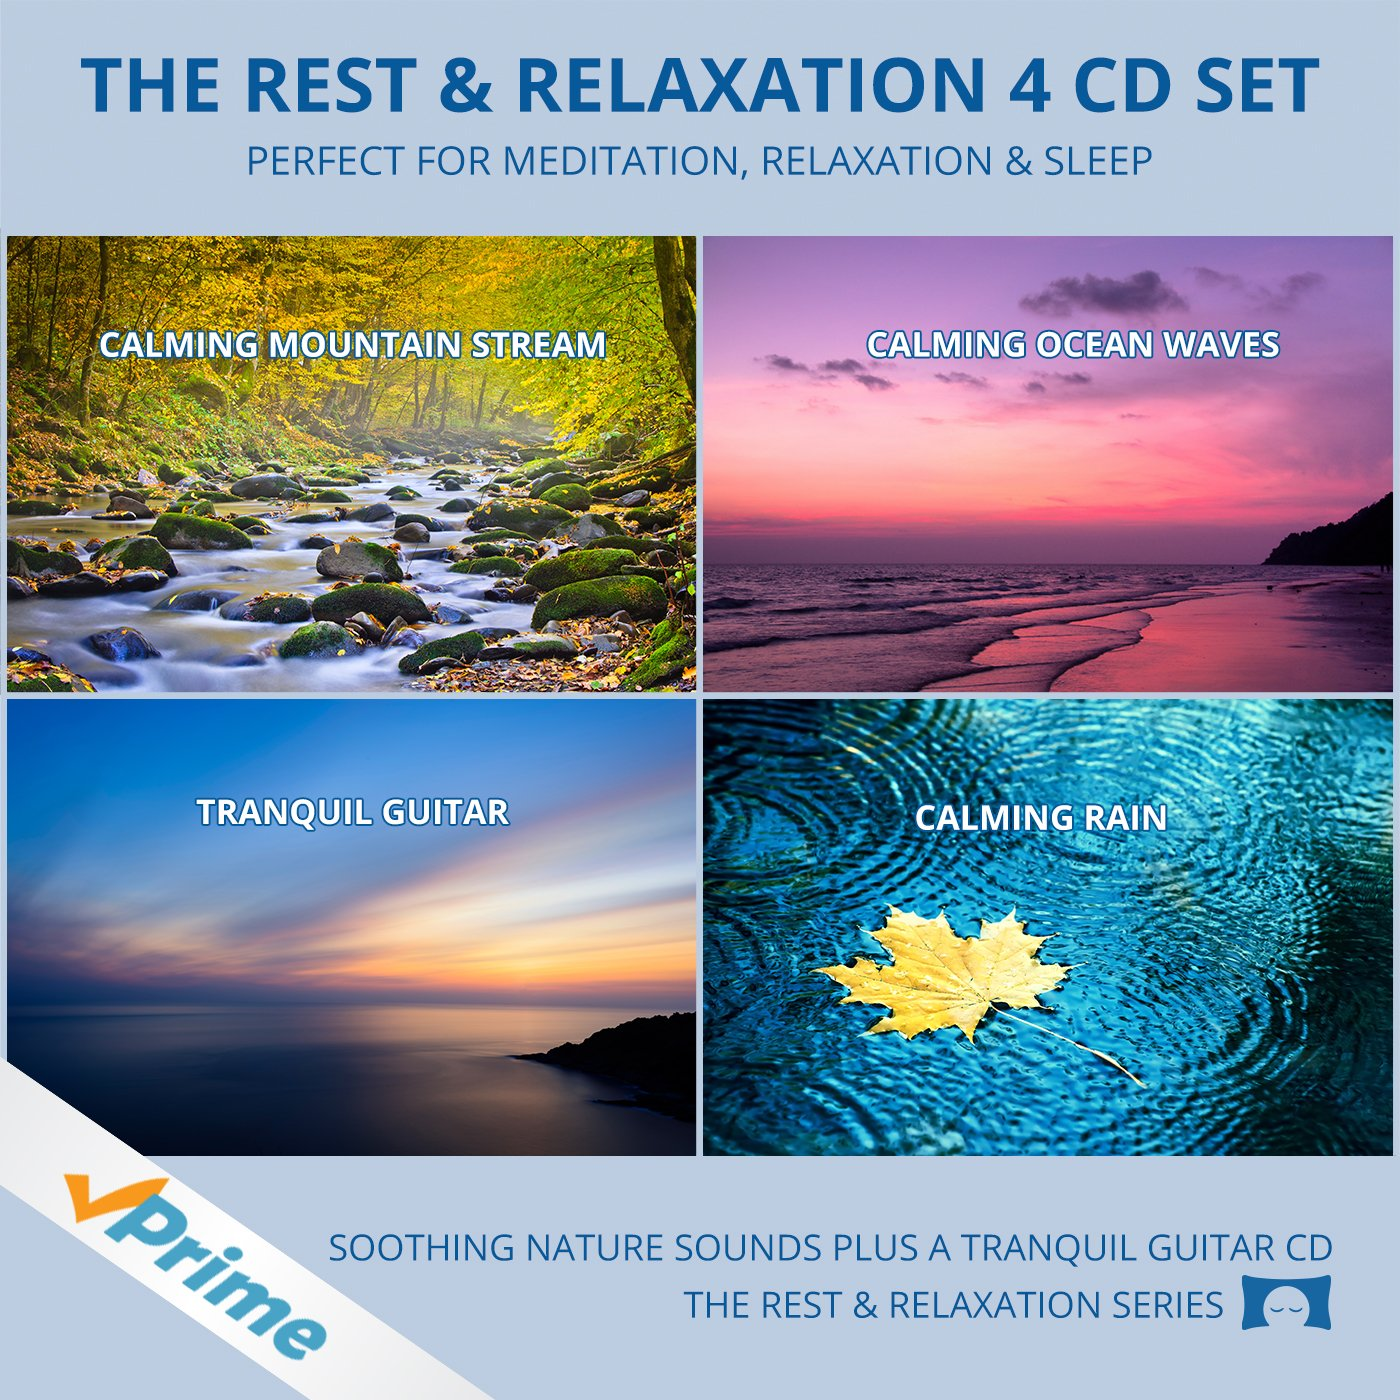 Relaxing Nature Sounds 4 CD Set - for Meditation, Relaxation and Sleep - Nature's Perfect White Noise - by The Rhythm Tree - The Rest and Relaxation Series